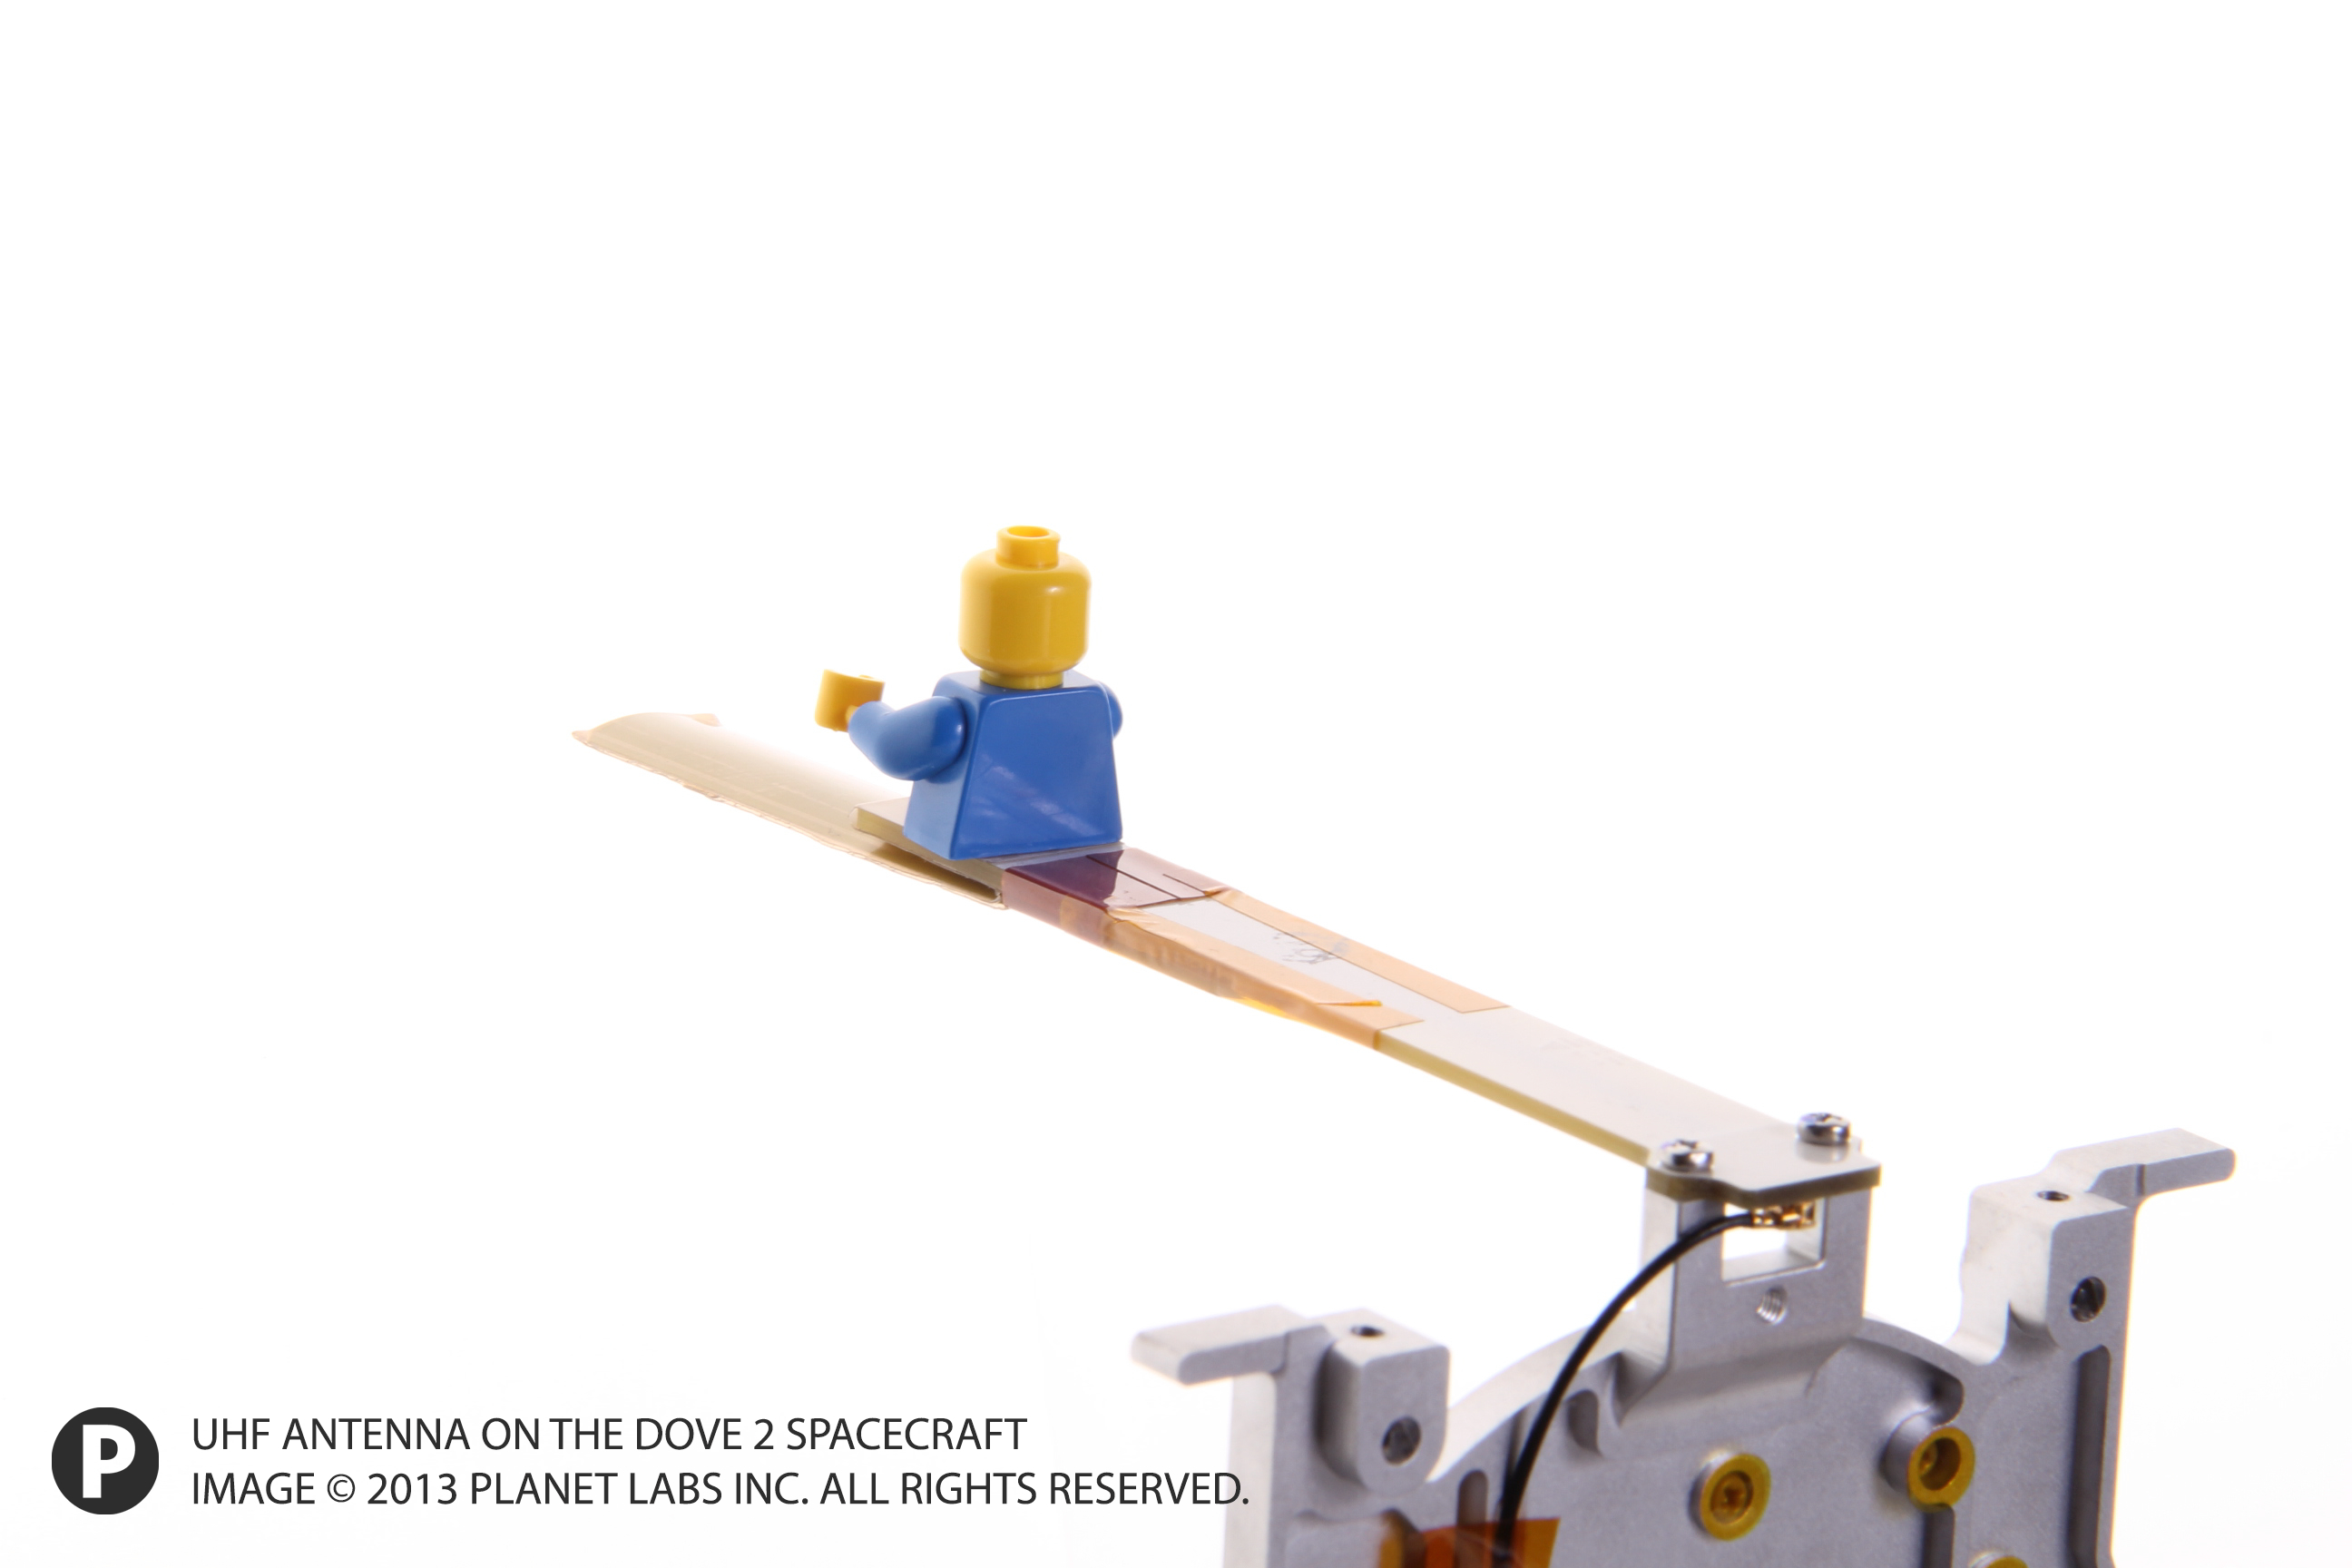 Lego Man on Dove 2 Antenna